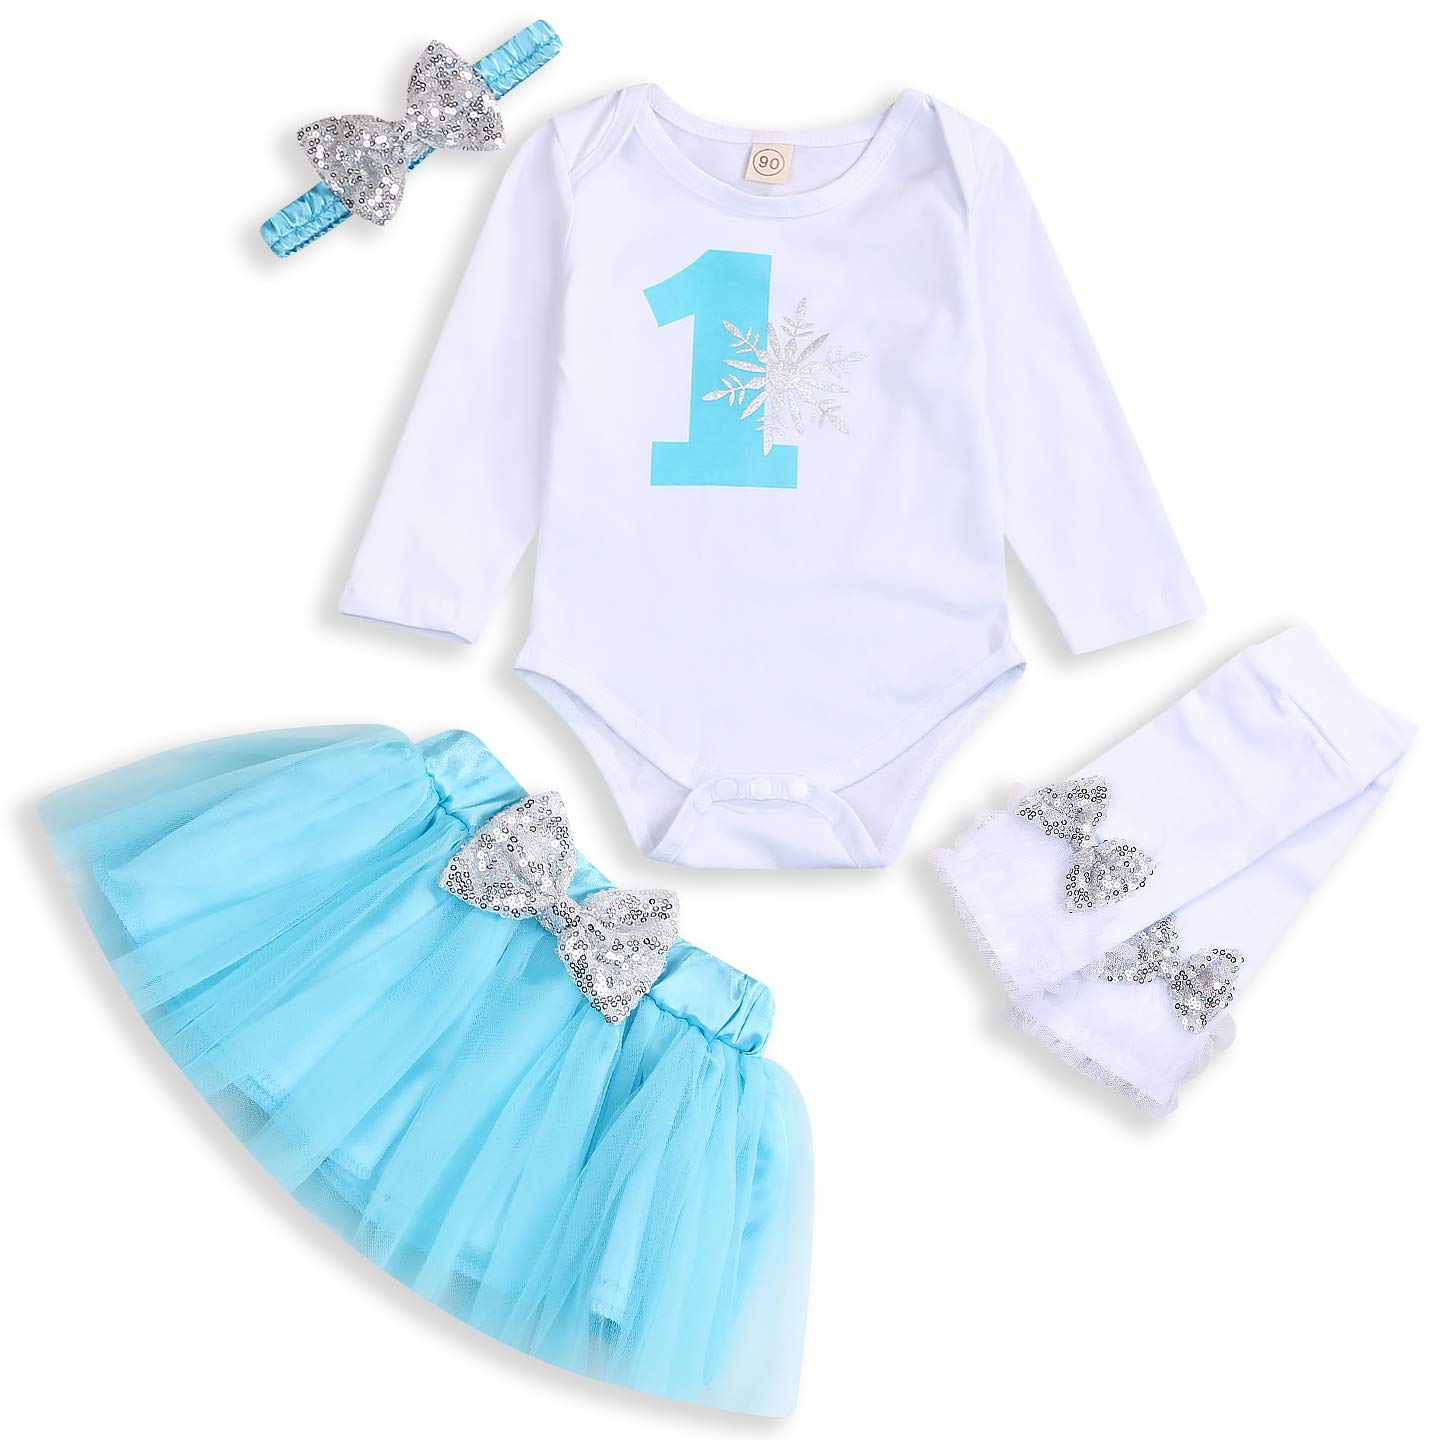 Baby Girl One Birthday Skirts Set Toddler Snowflake Romper+Blue Tutu Skirt+Bow Headband+Sequin Leg Warmers Outfits